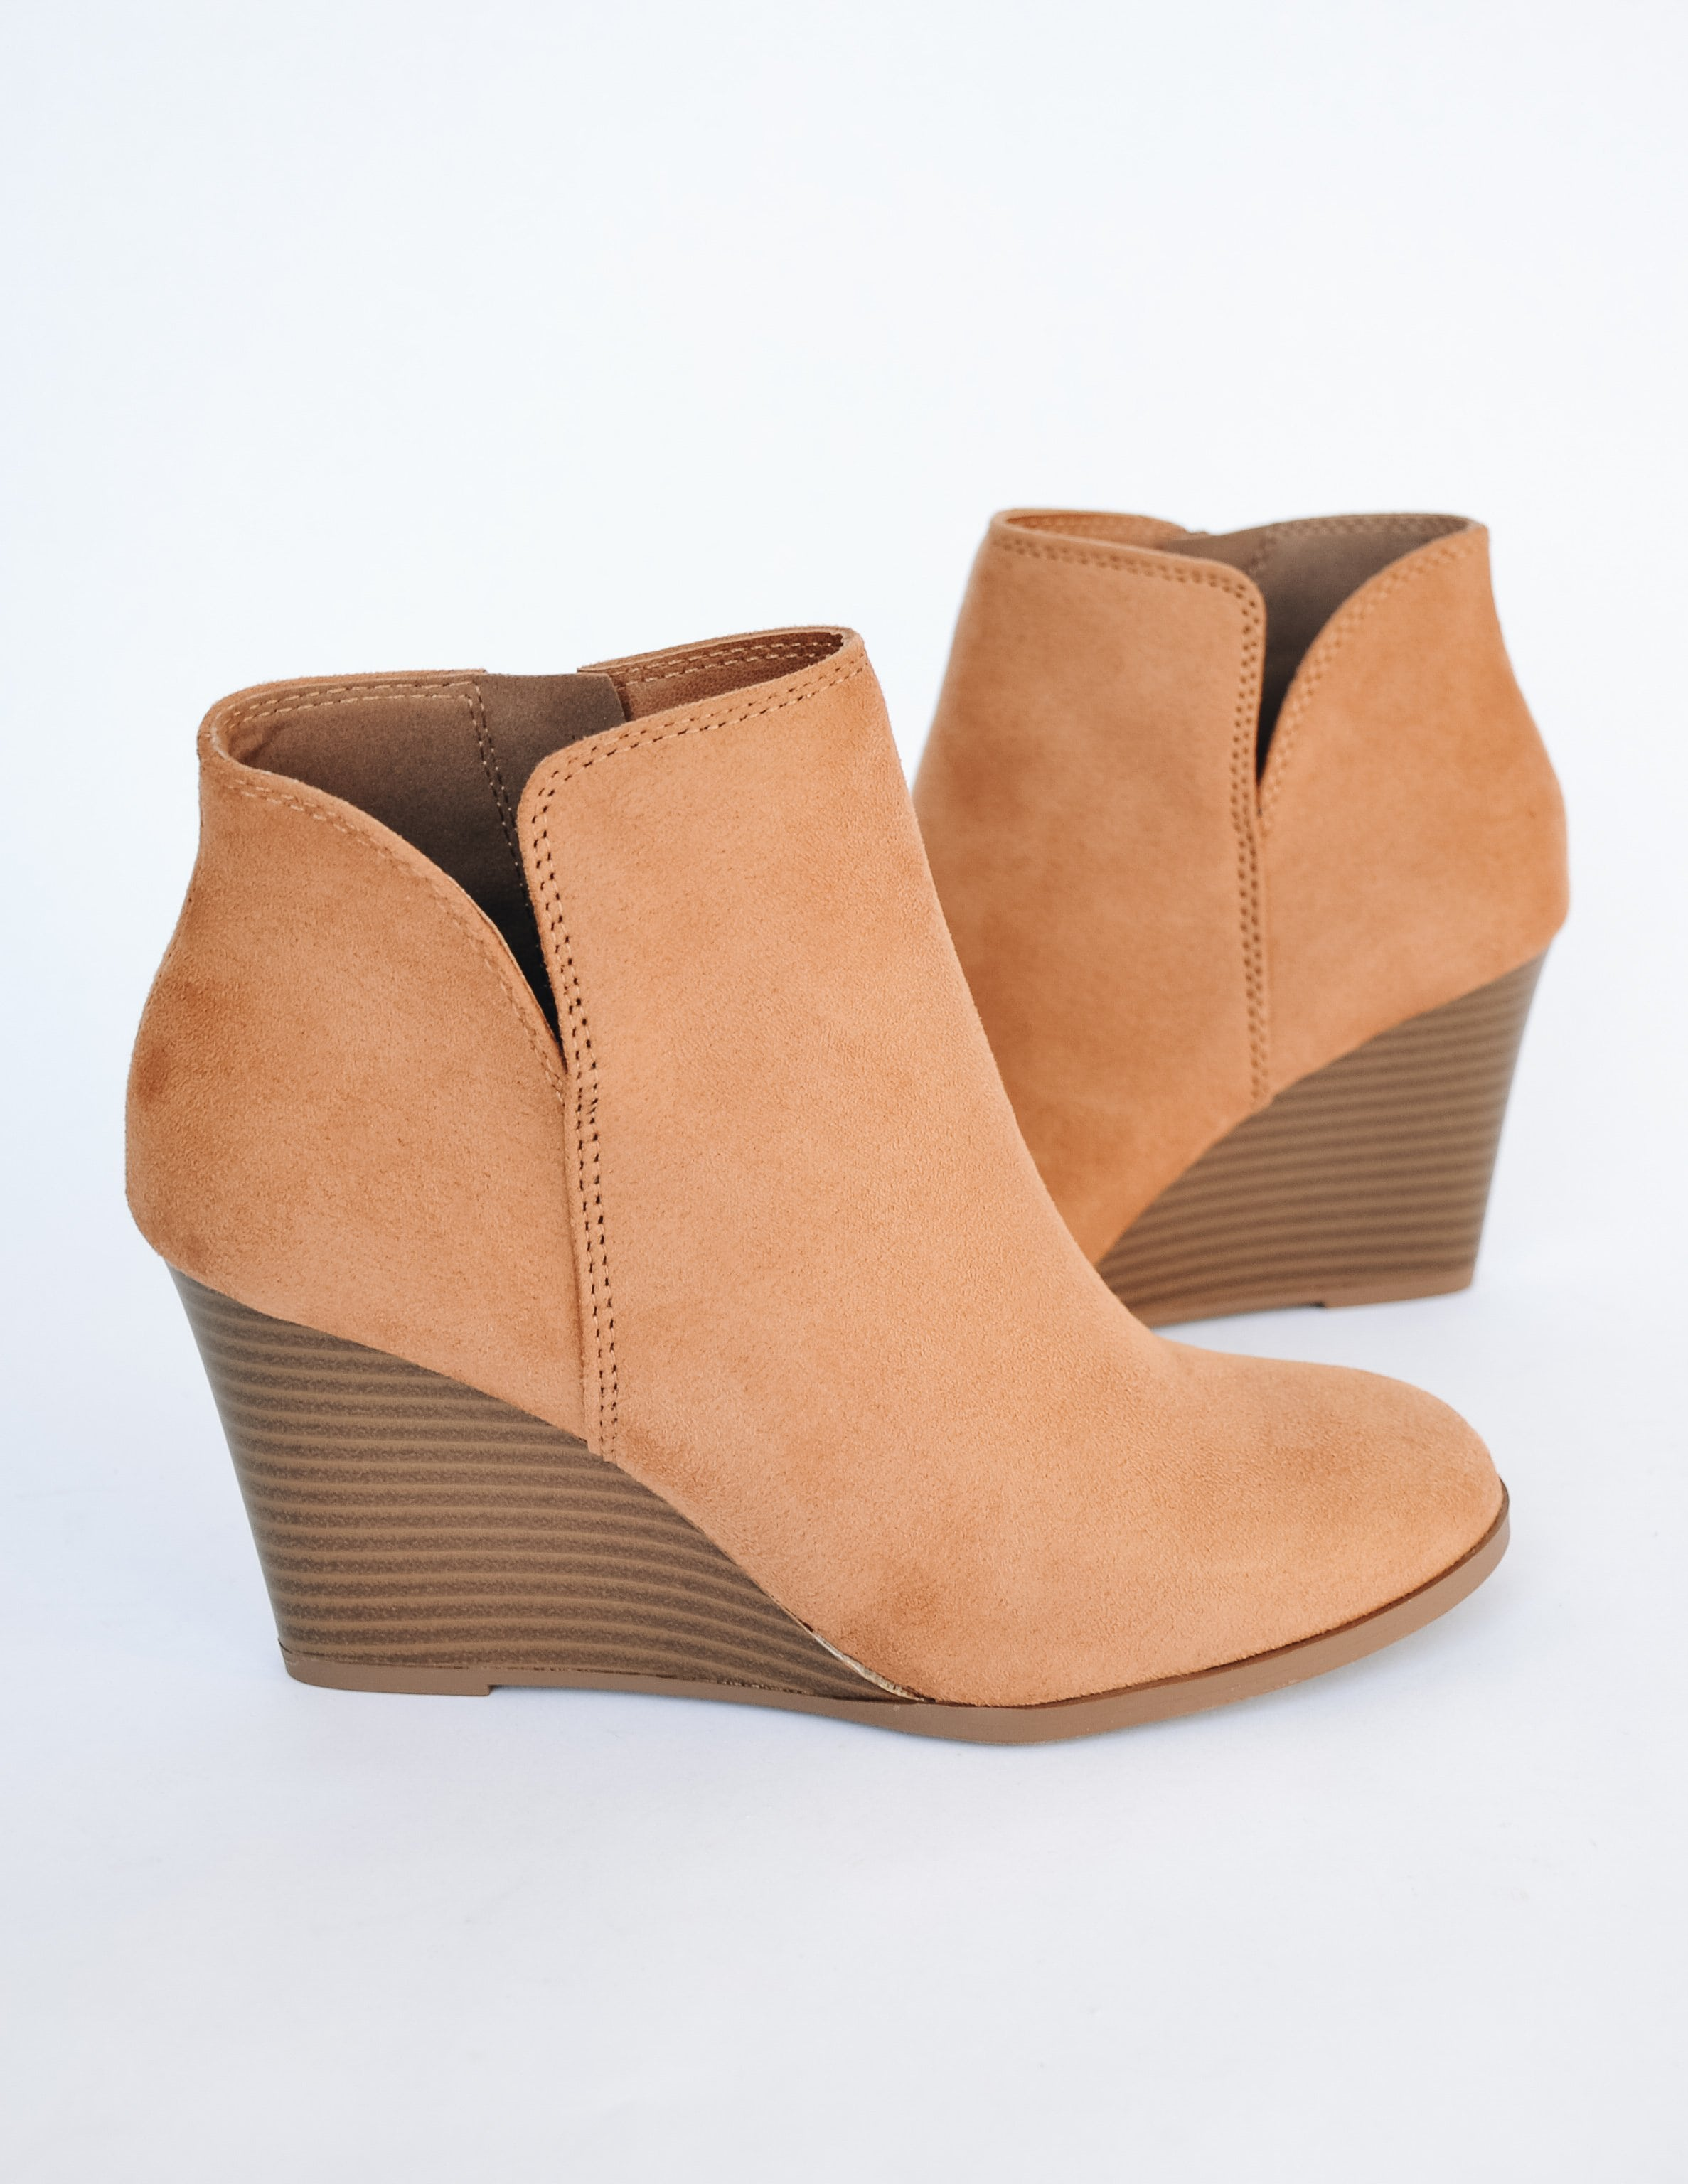 Chamois colored heel with faux suede upper and faux stacked wood heel